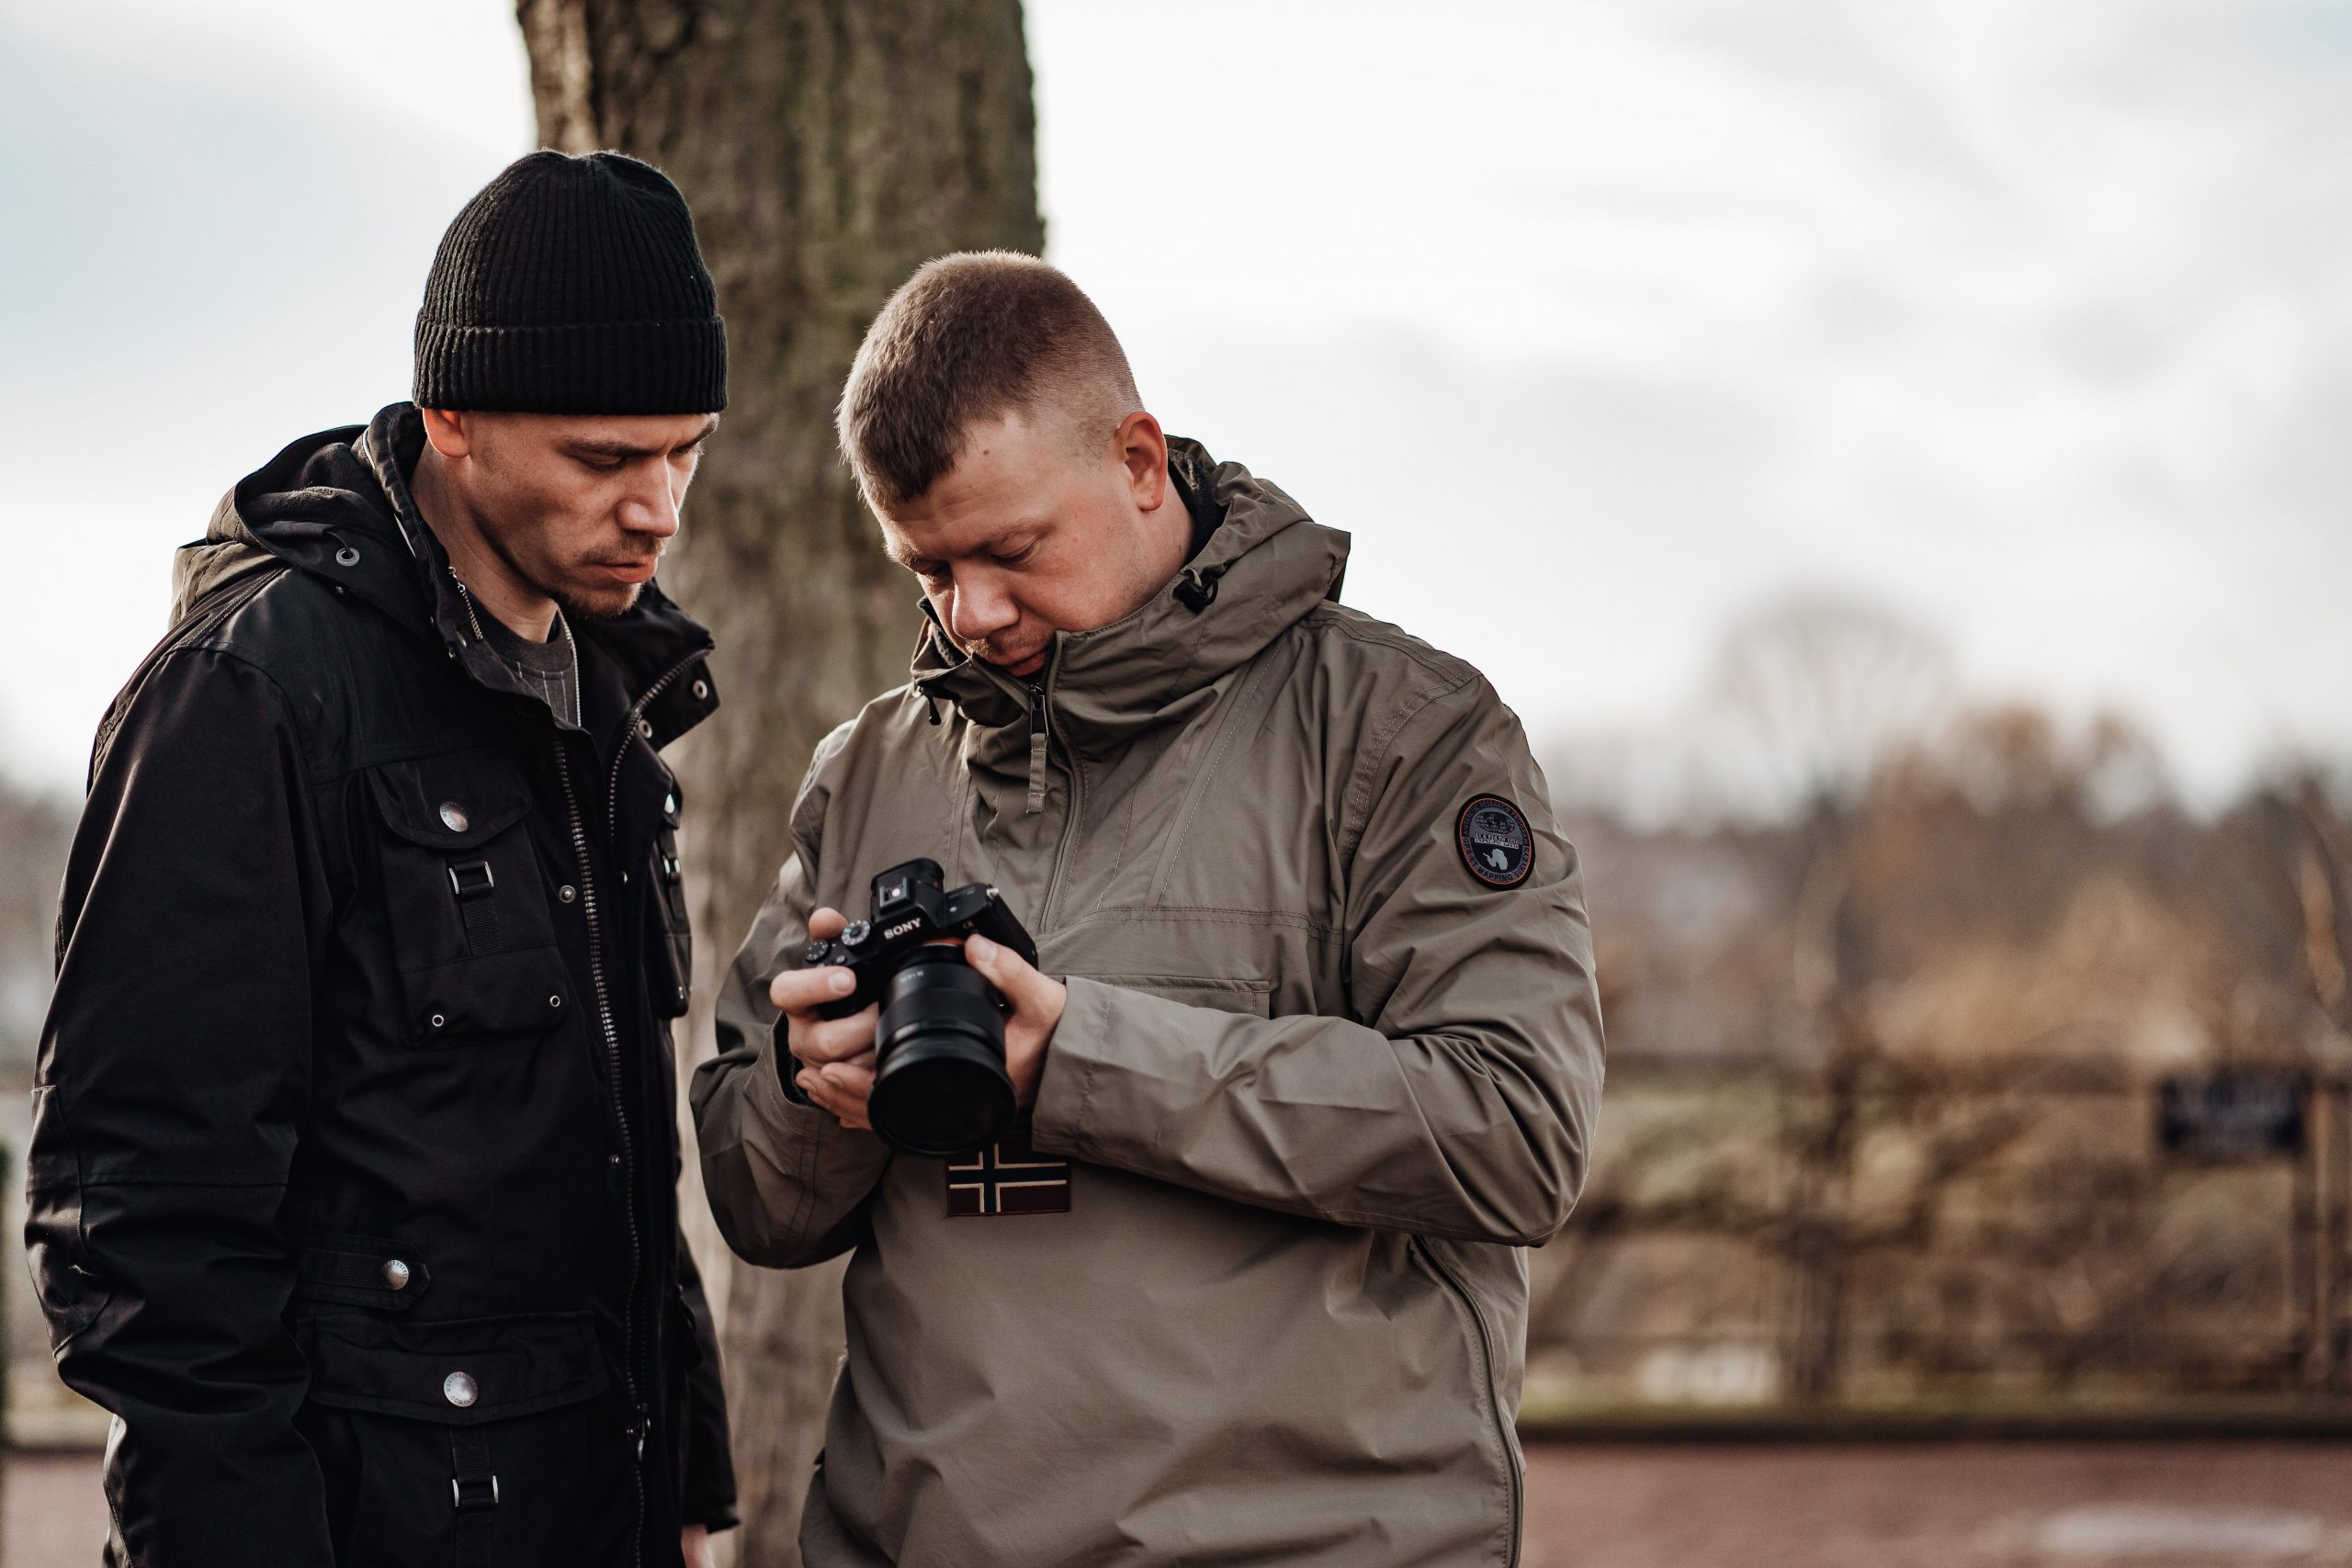 ACTION! - Behind The Scene ''Schatten des Licht'' from Pascal Views